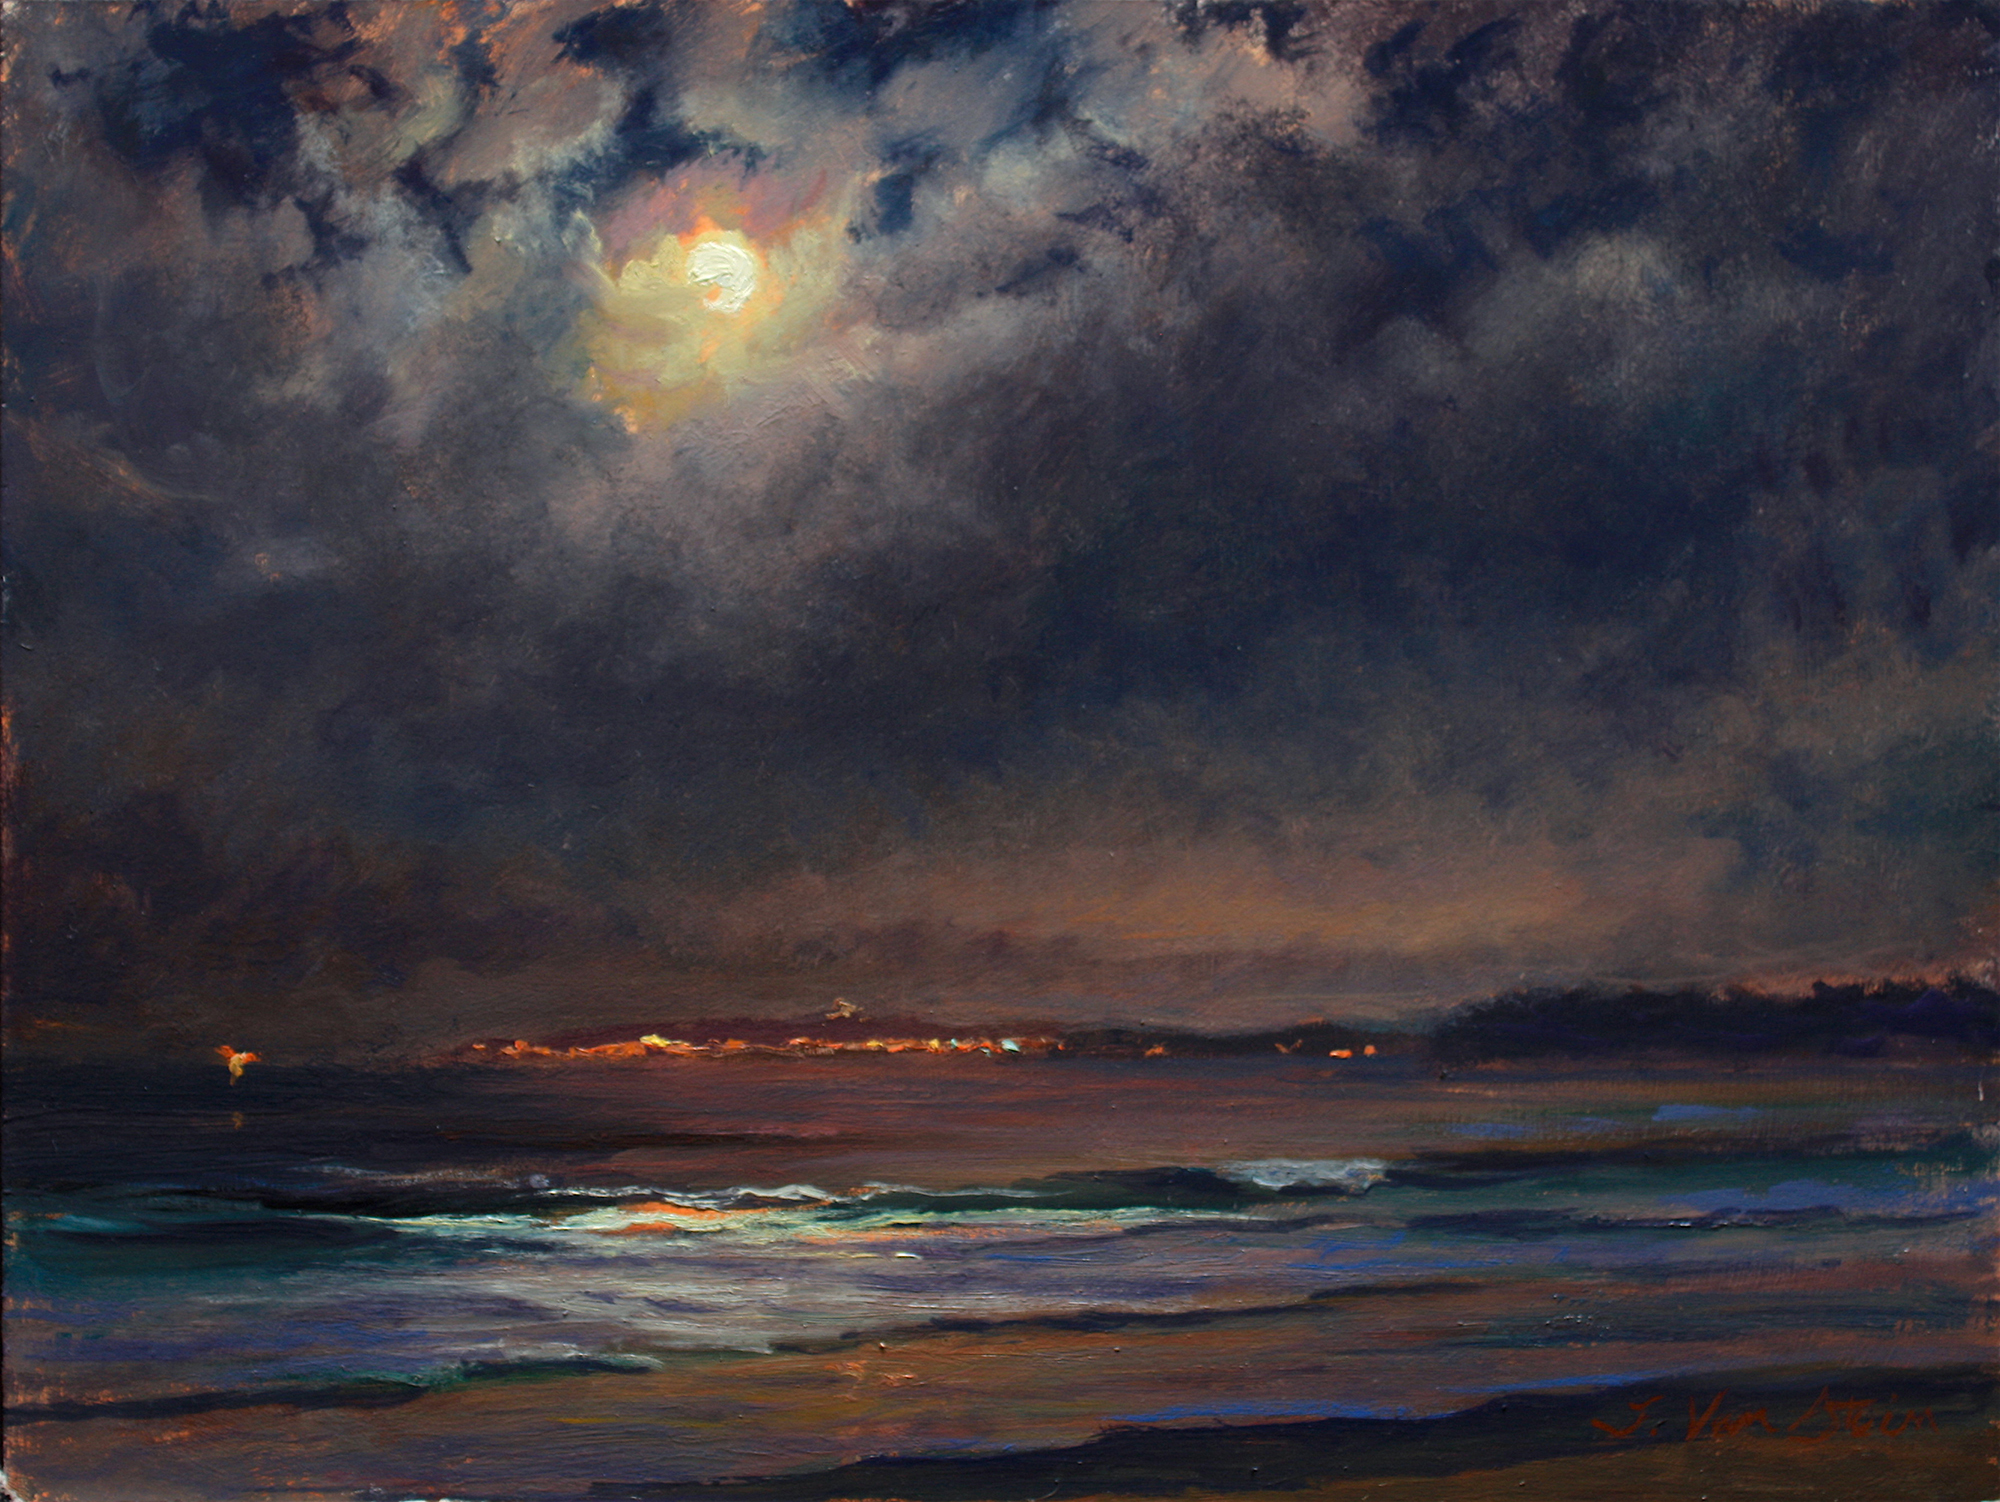 Full Worm Moon, Incoming Fog,  12 x 16, oil on board, 2019